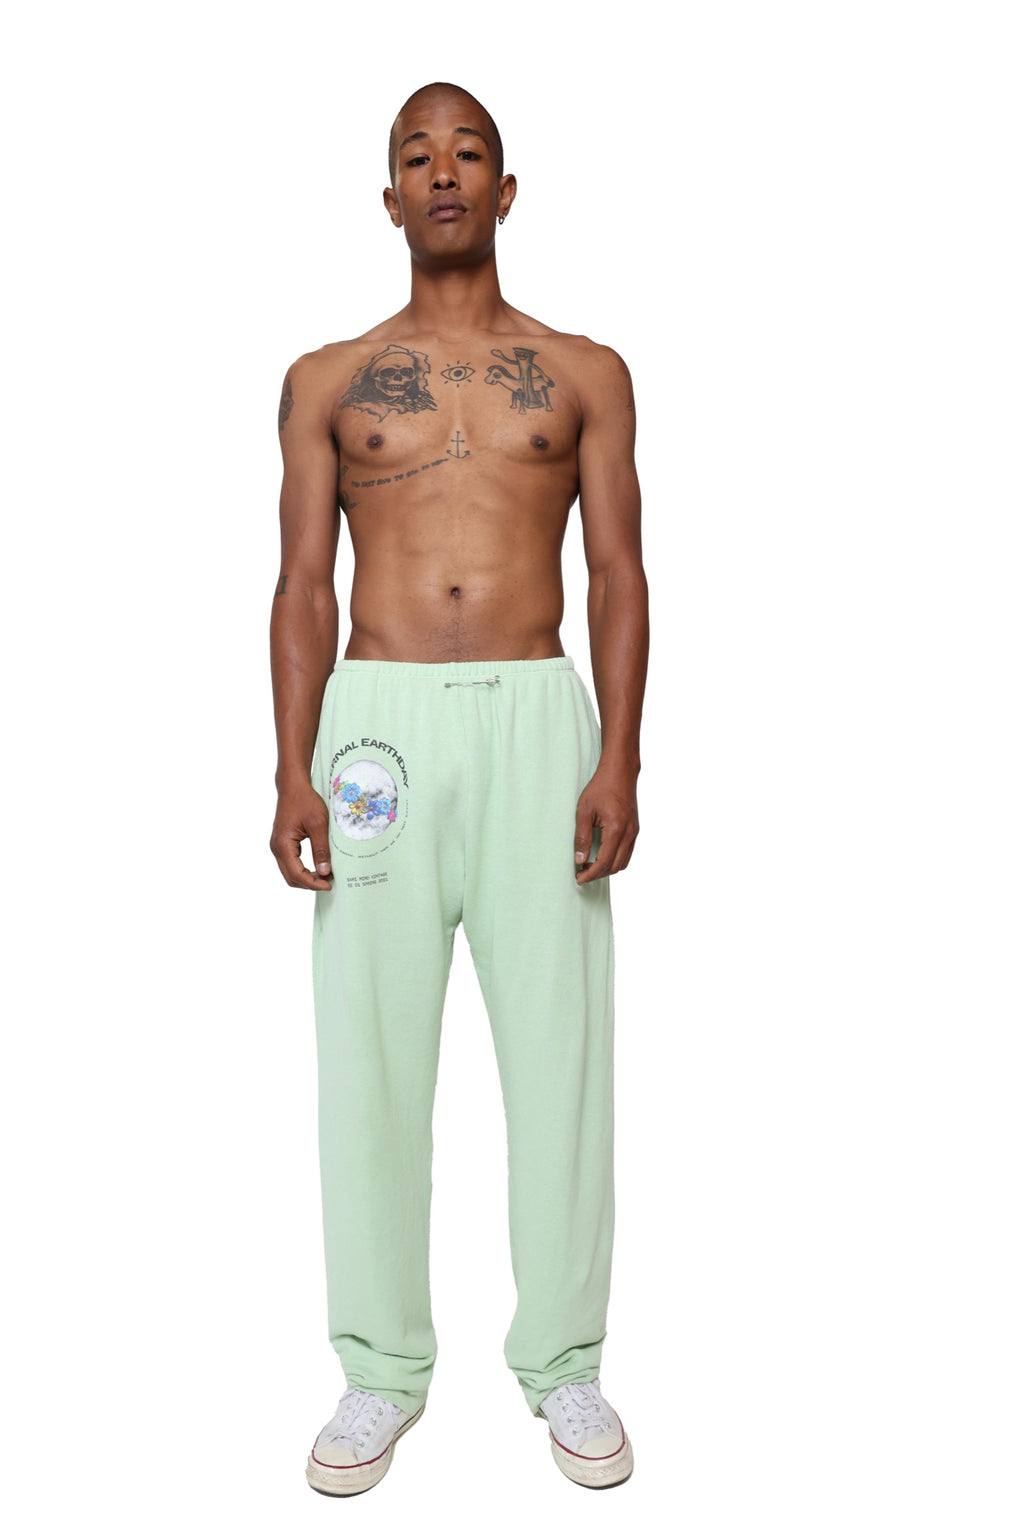 SAFETY PIN SWEATPANTS IN SEAFOAM